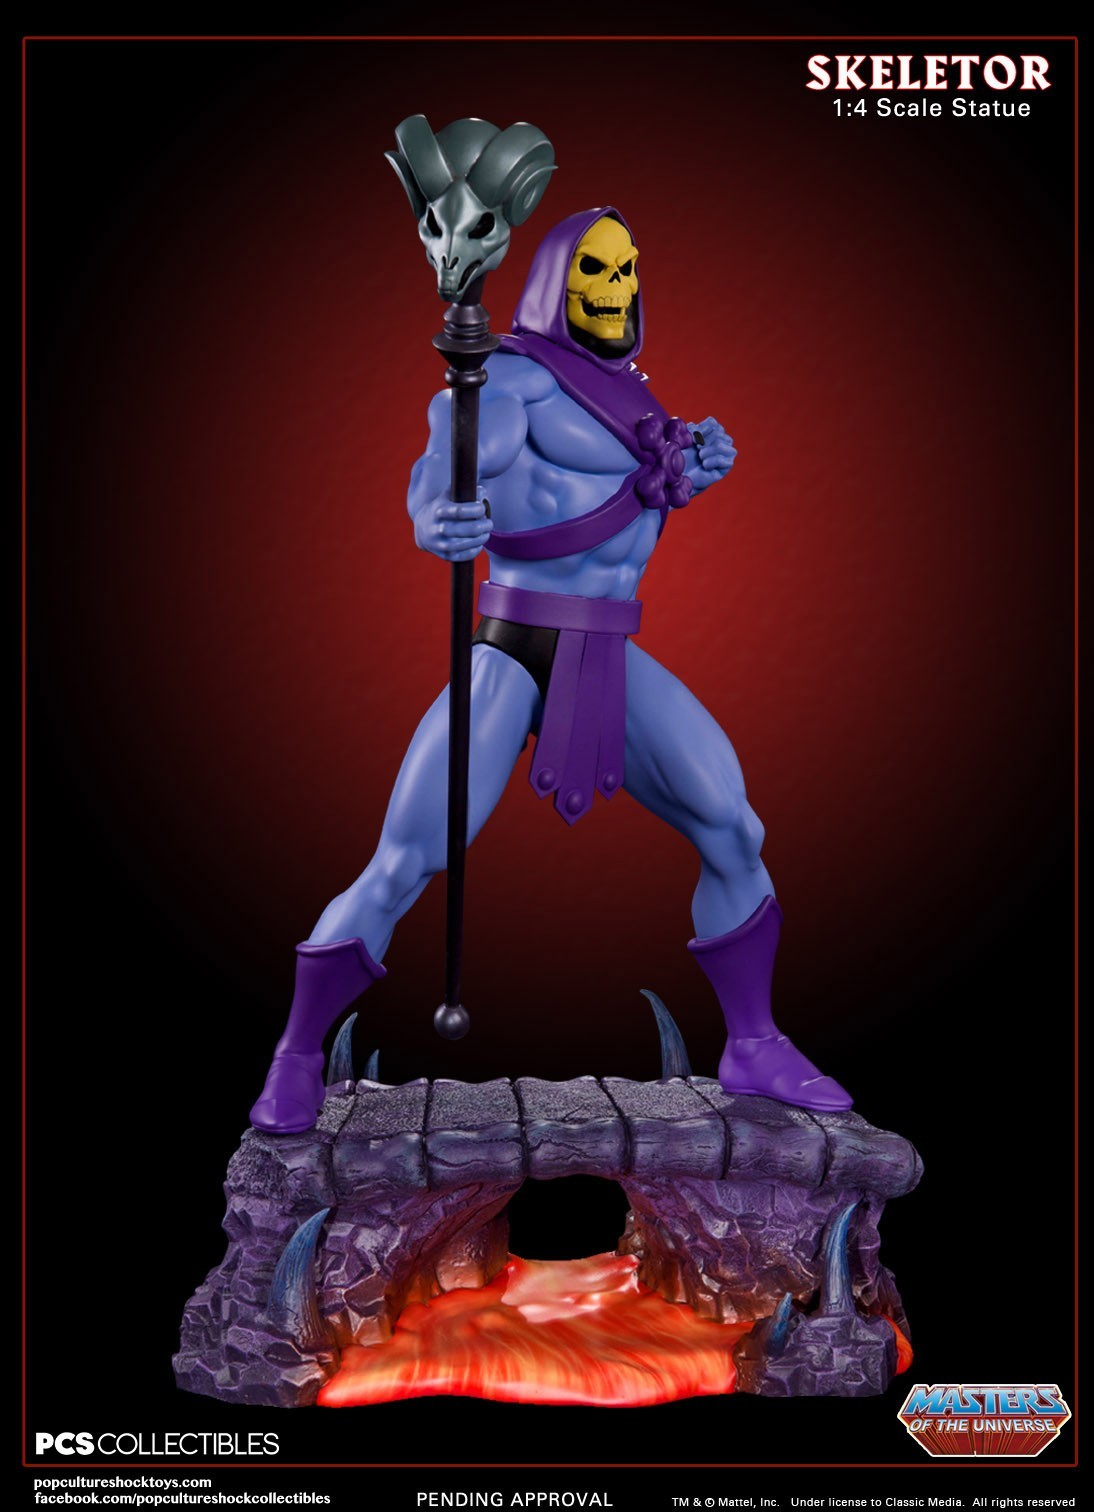 Alejandro pereira skeletor media j